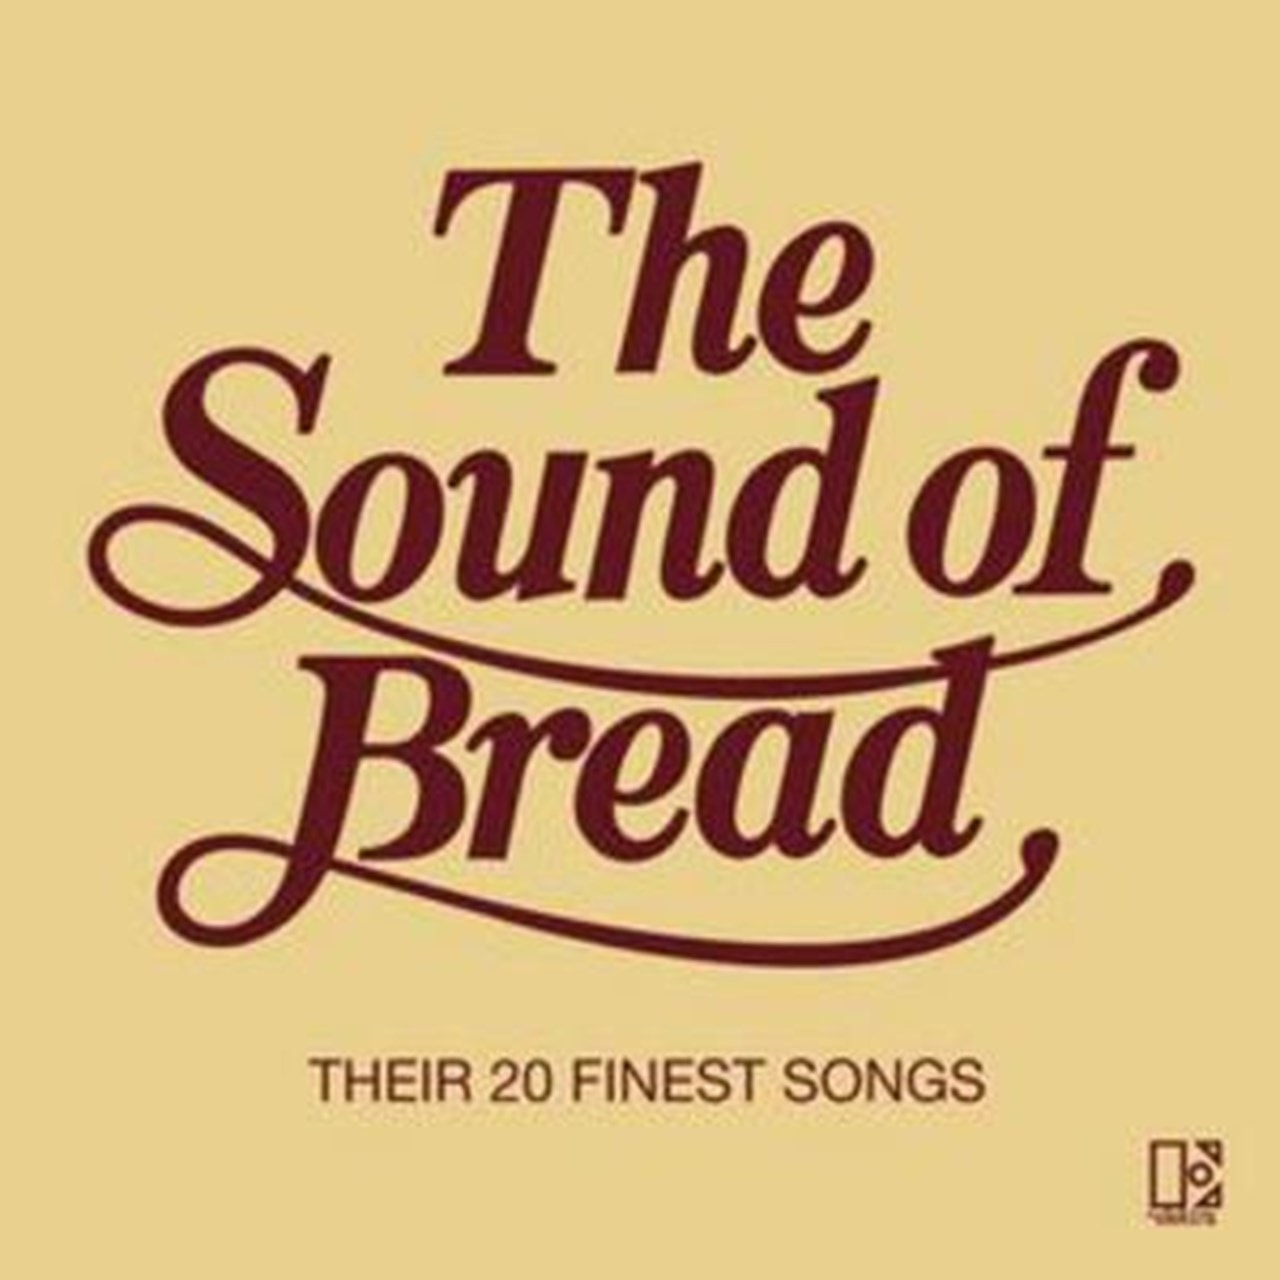 Sound of Bread, The - Their 20 Finest Songs - 1